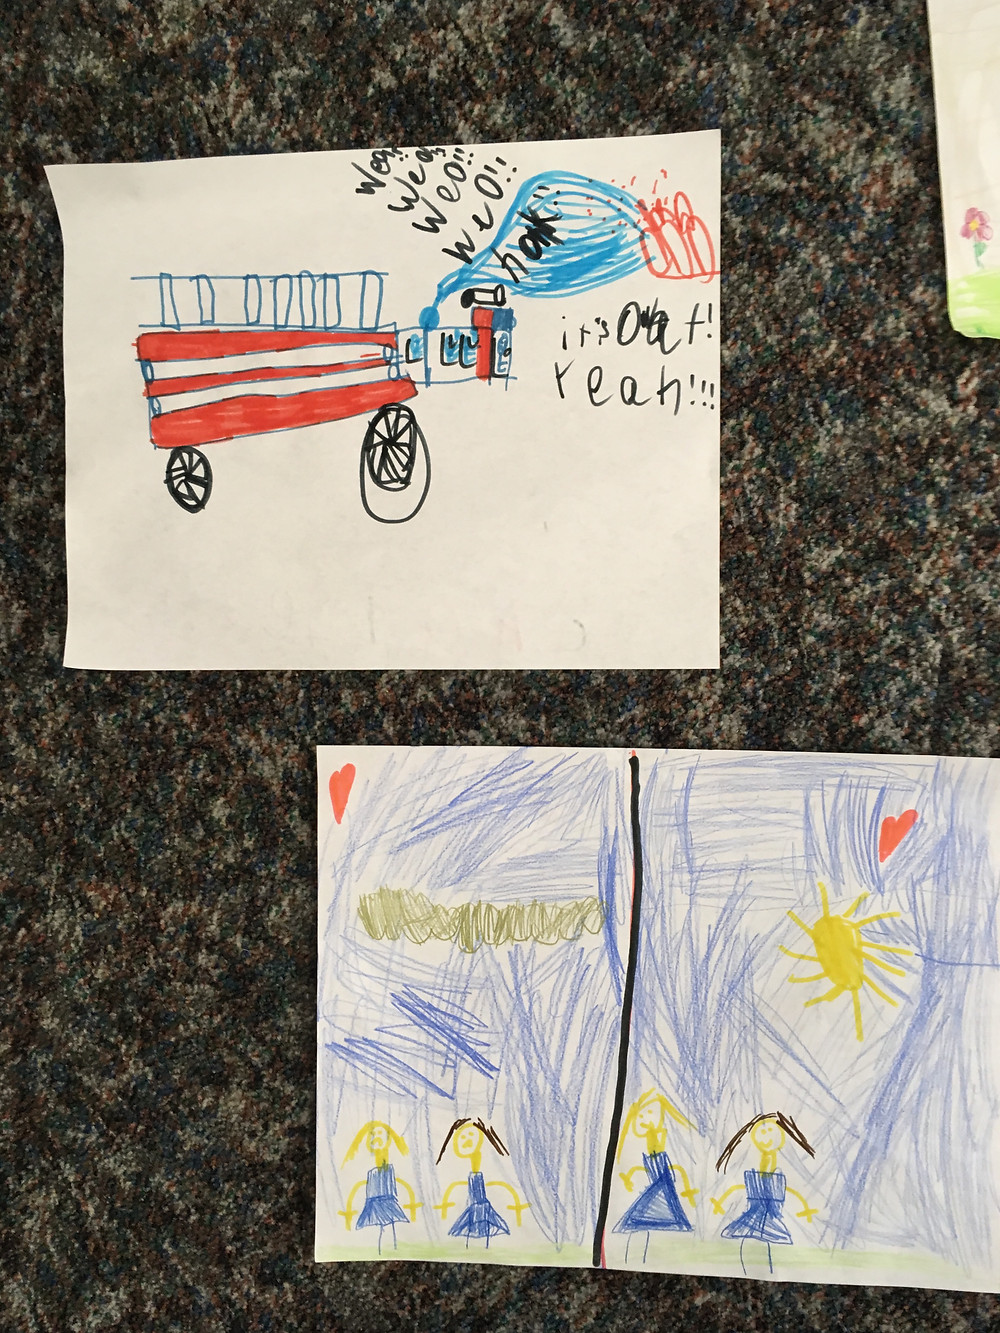 Students drew pictures of what community service means to them